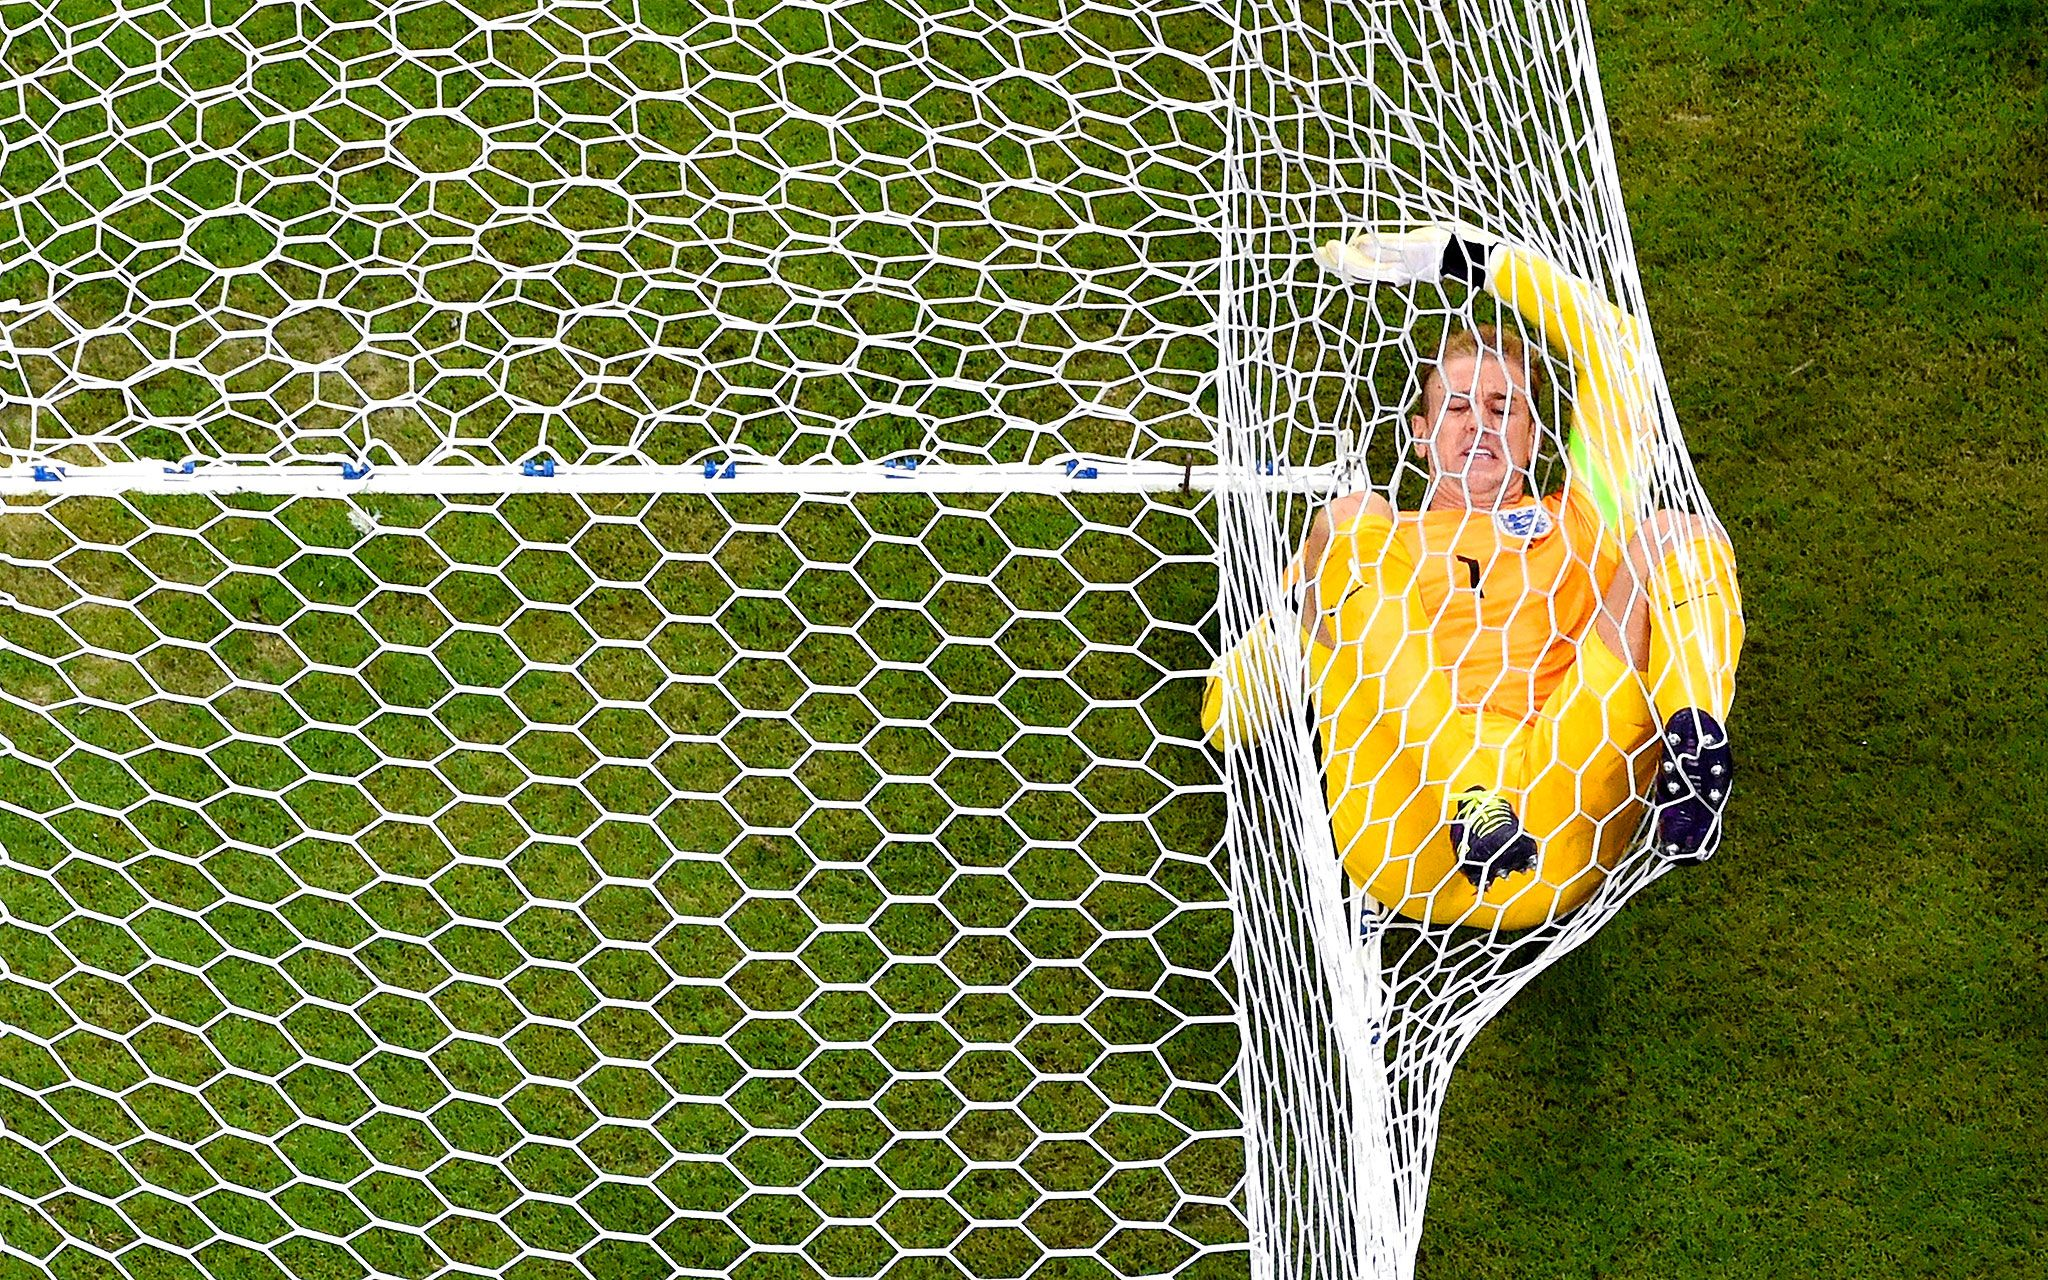 Joe Hart lands in his own net after allowing in Italy's second goal to Mario Balotelli.